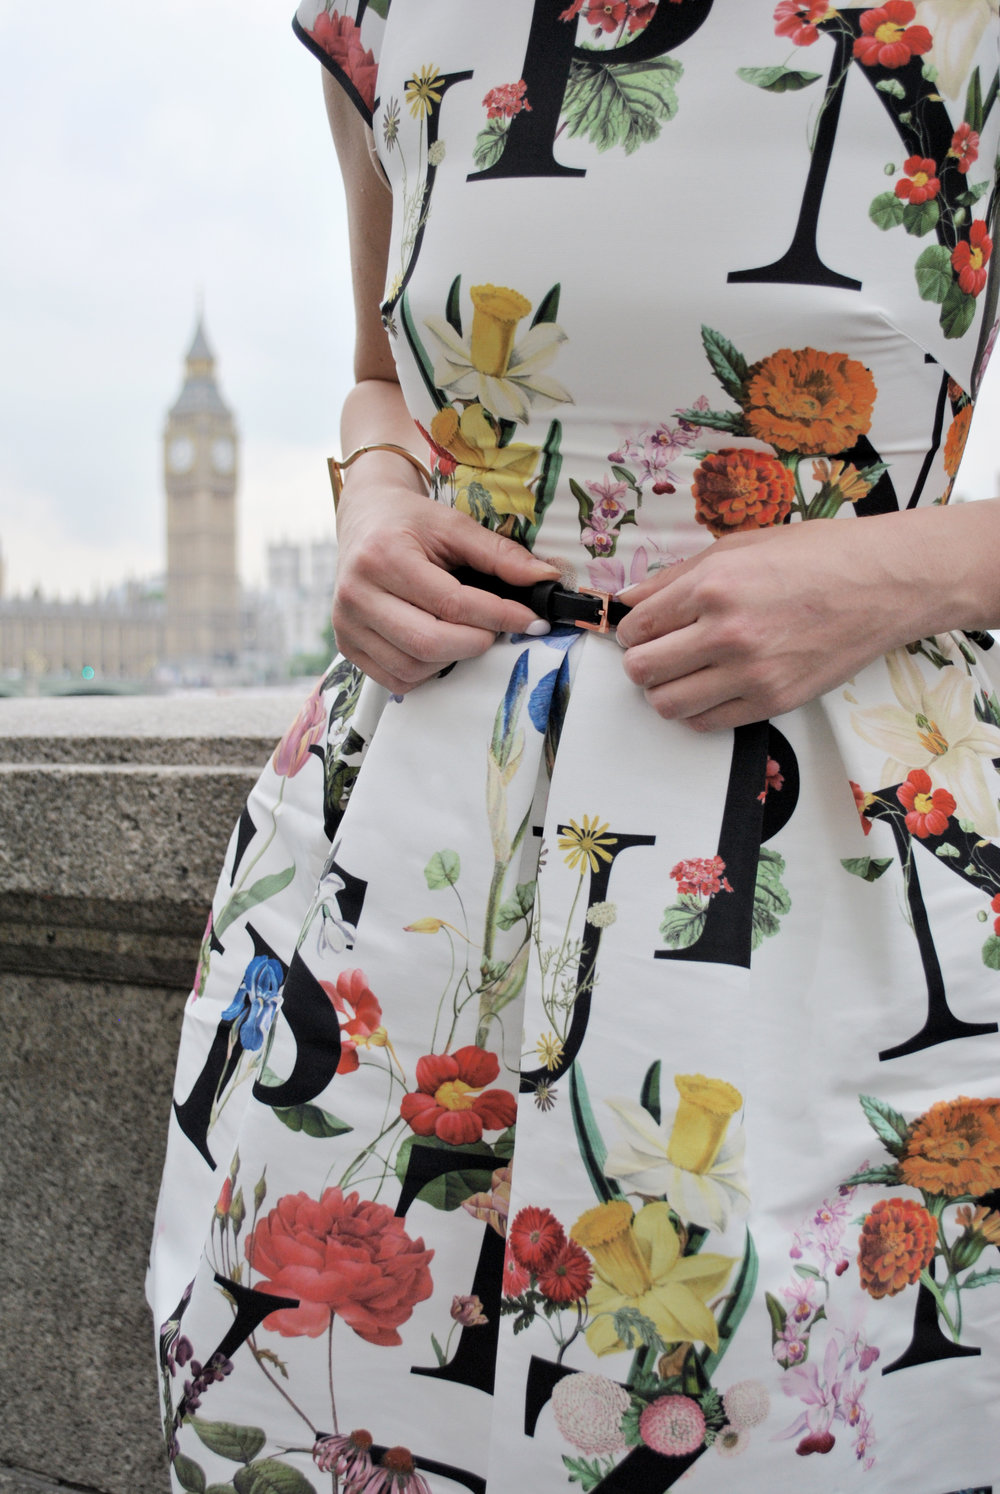 thoughtfulwish | London, ted baker, london eye, big ben, the thames, london style, london fashion, alphabet dress, type dress, meredith wish, bosblogger